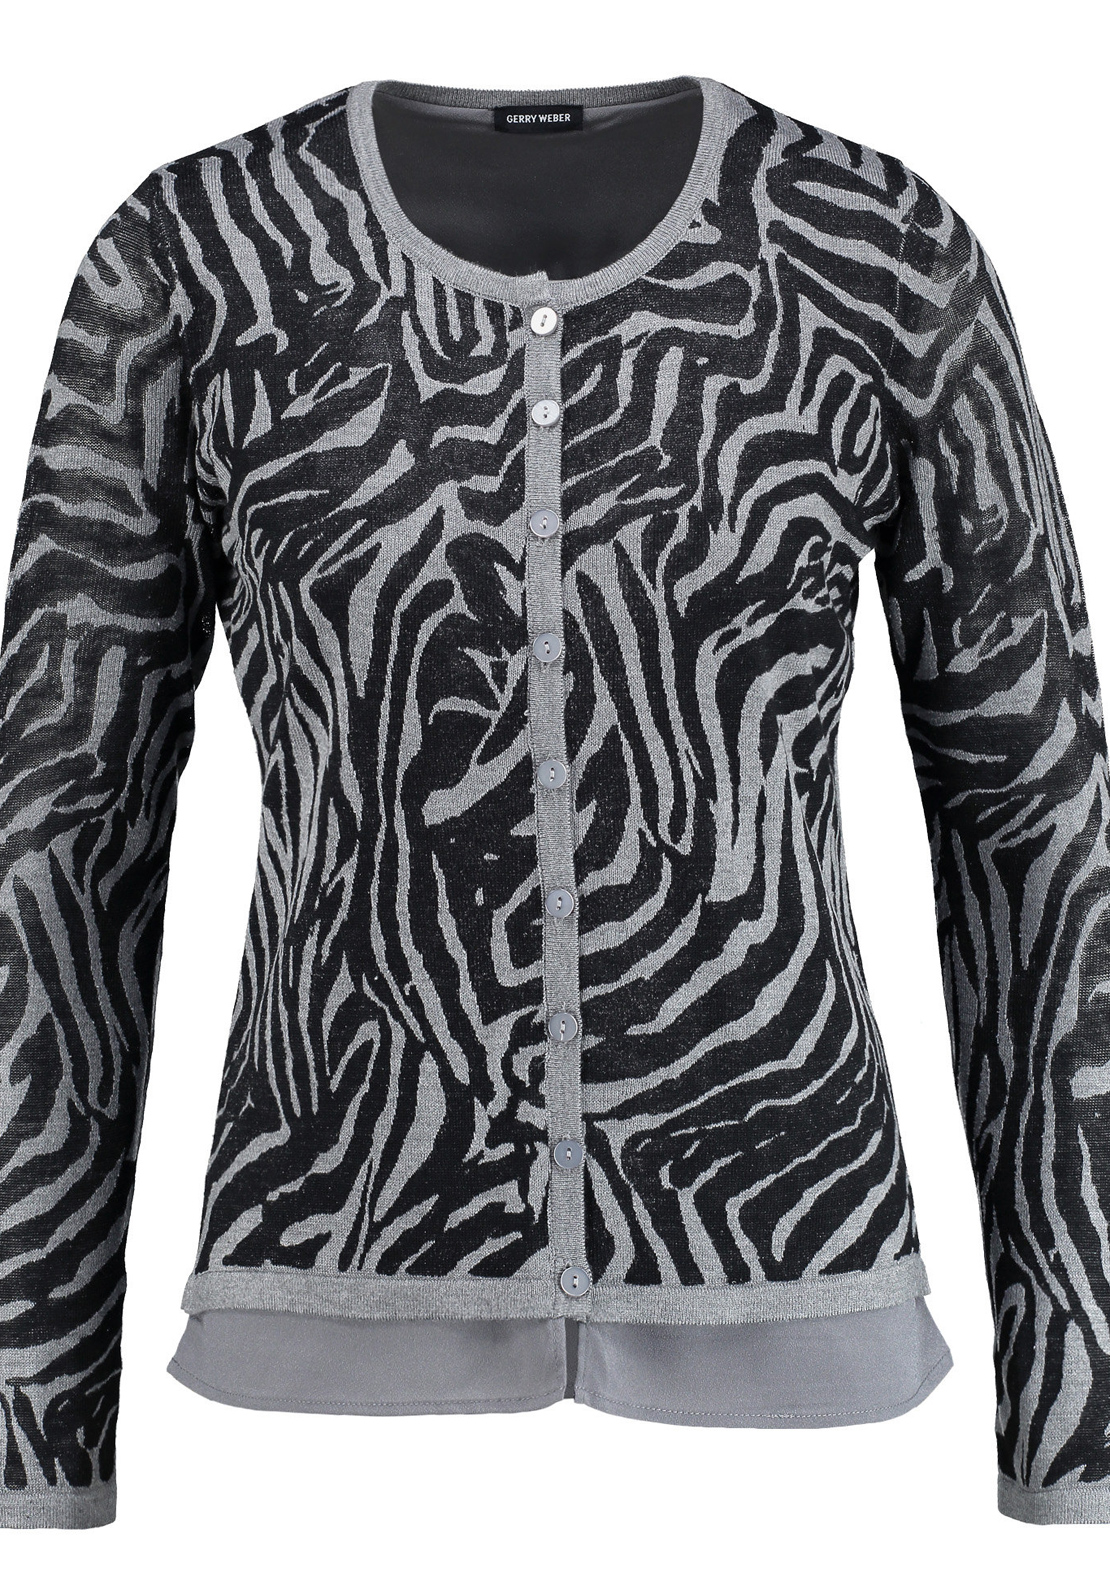 Gerry Weber Zebra Print Double Layer Cardigan, Black and Grey